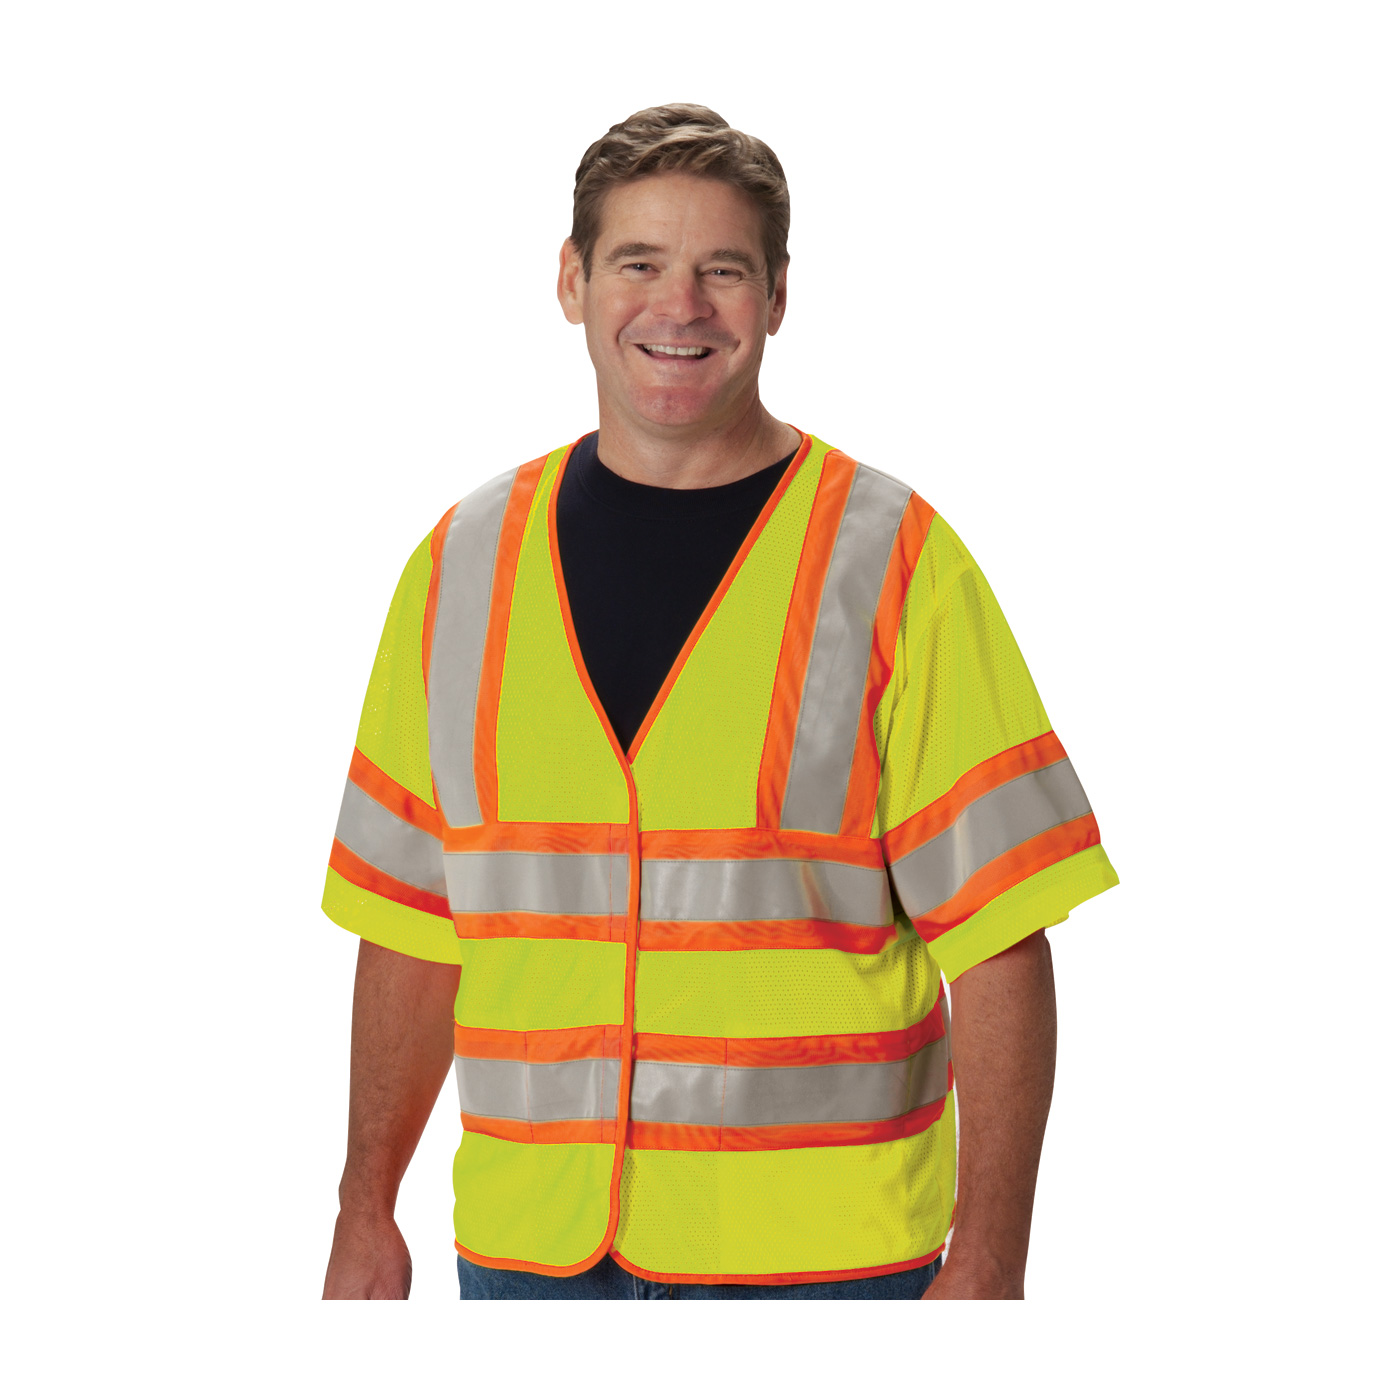 PIP 305-HSVPFRLY ANSI Class 3 FR-Treated Mesh Vest, Hi Vis Lime Yellow, 2 Internal Pockets